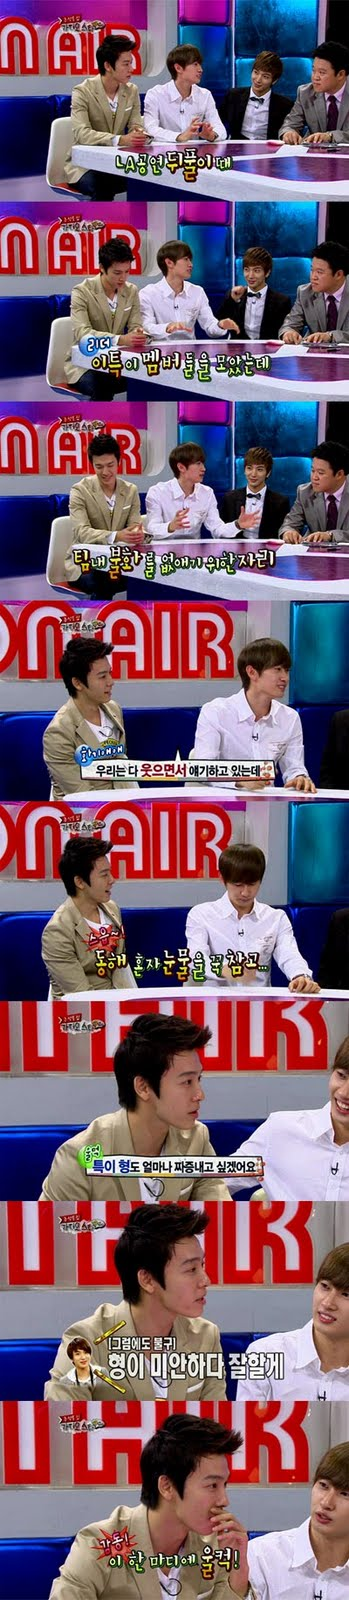 News] Donghae, the king of tears?